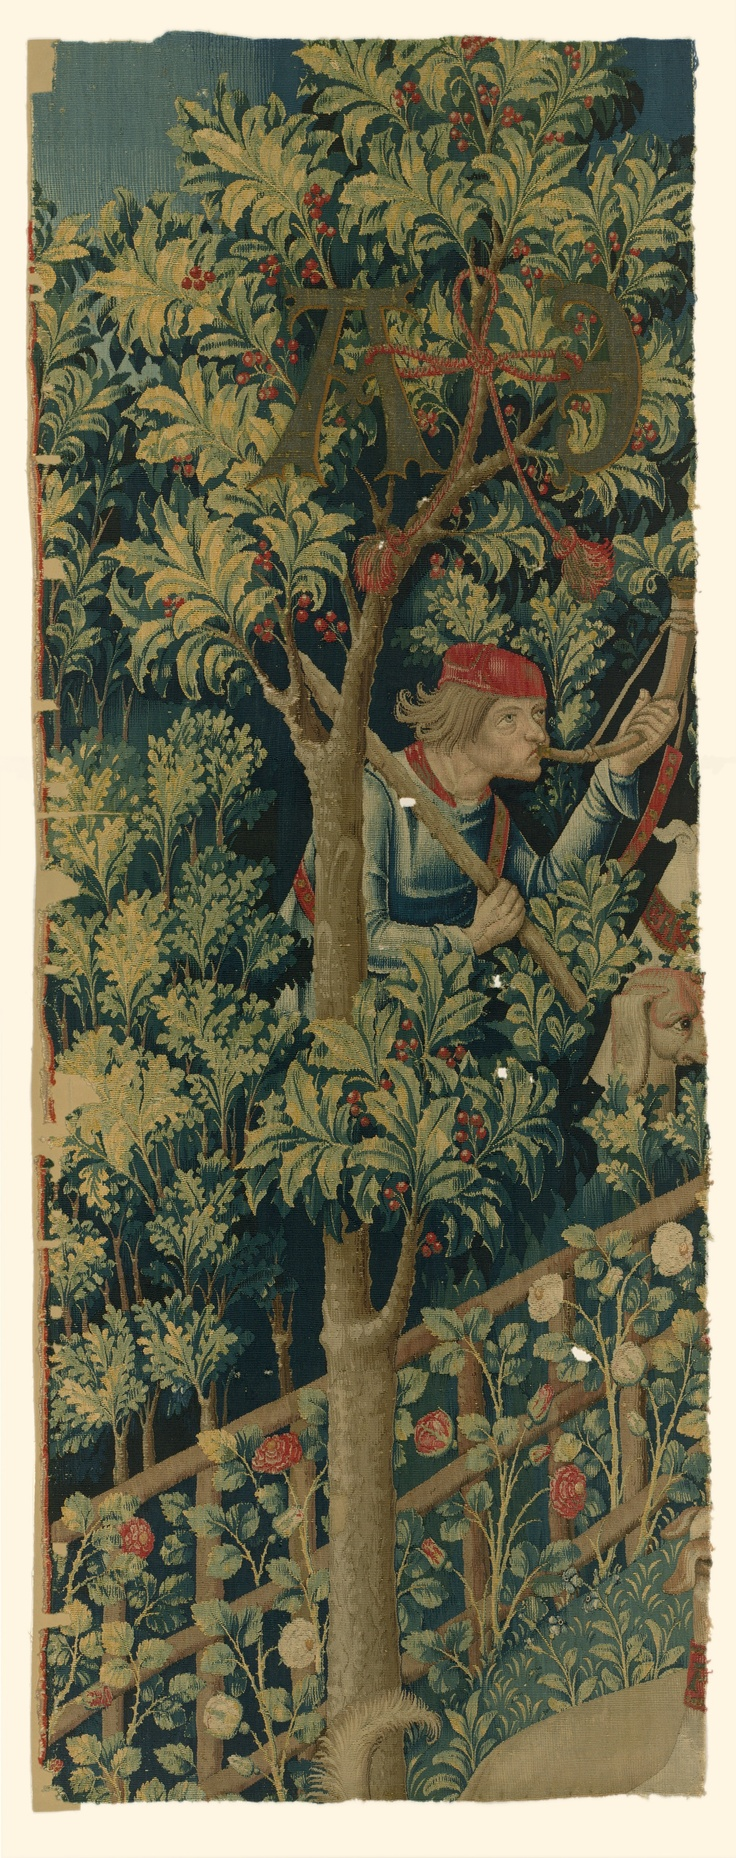 49 best Tapestries images on Pinterest | Tapestries, Tapestry and ...